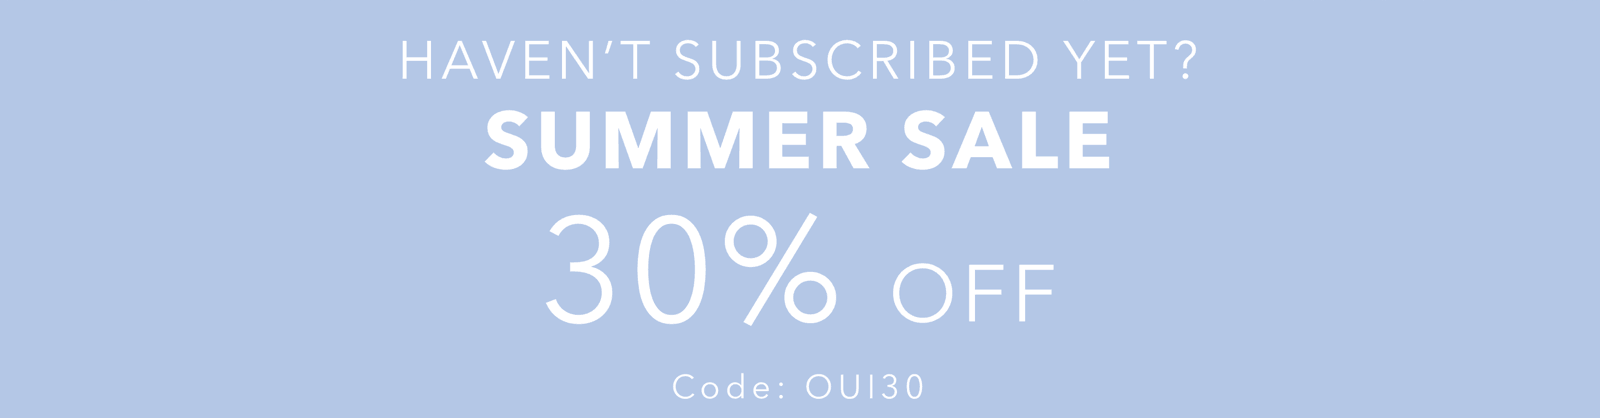 OuiPlease Coupon Code Summer Sale